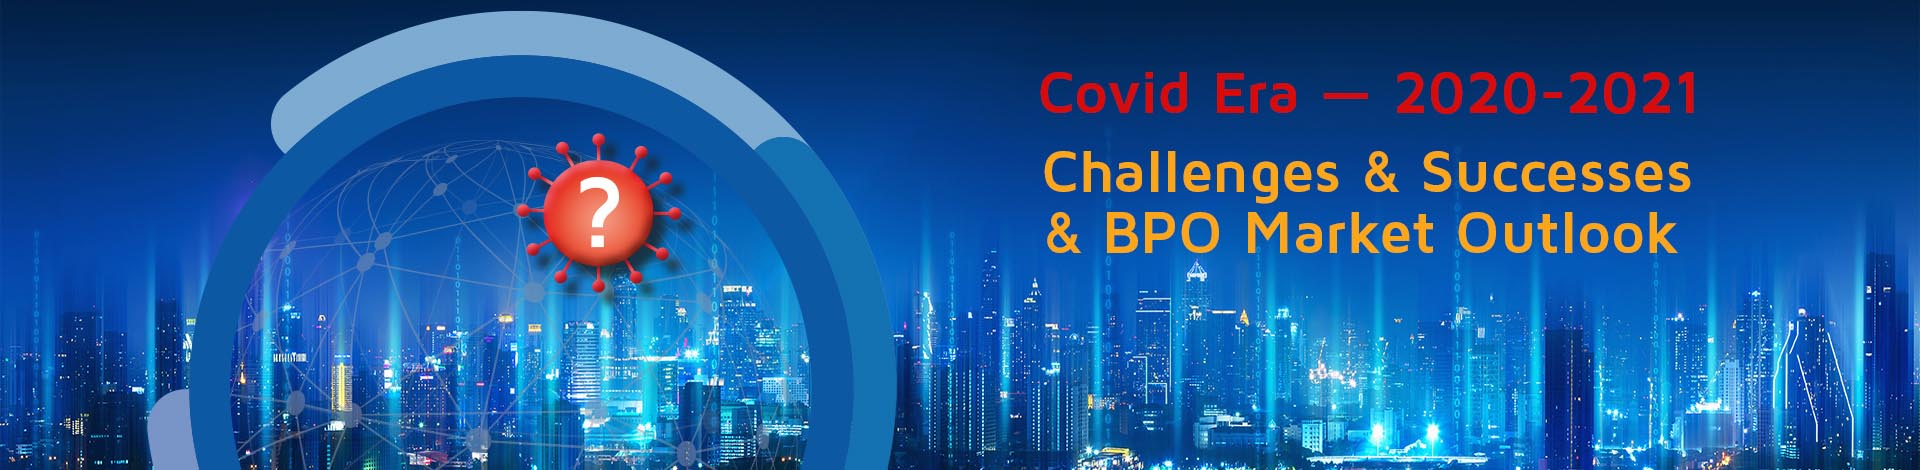 Process Solutions CEO-letter- Covid era, challenges and successes